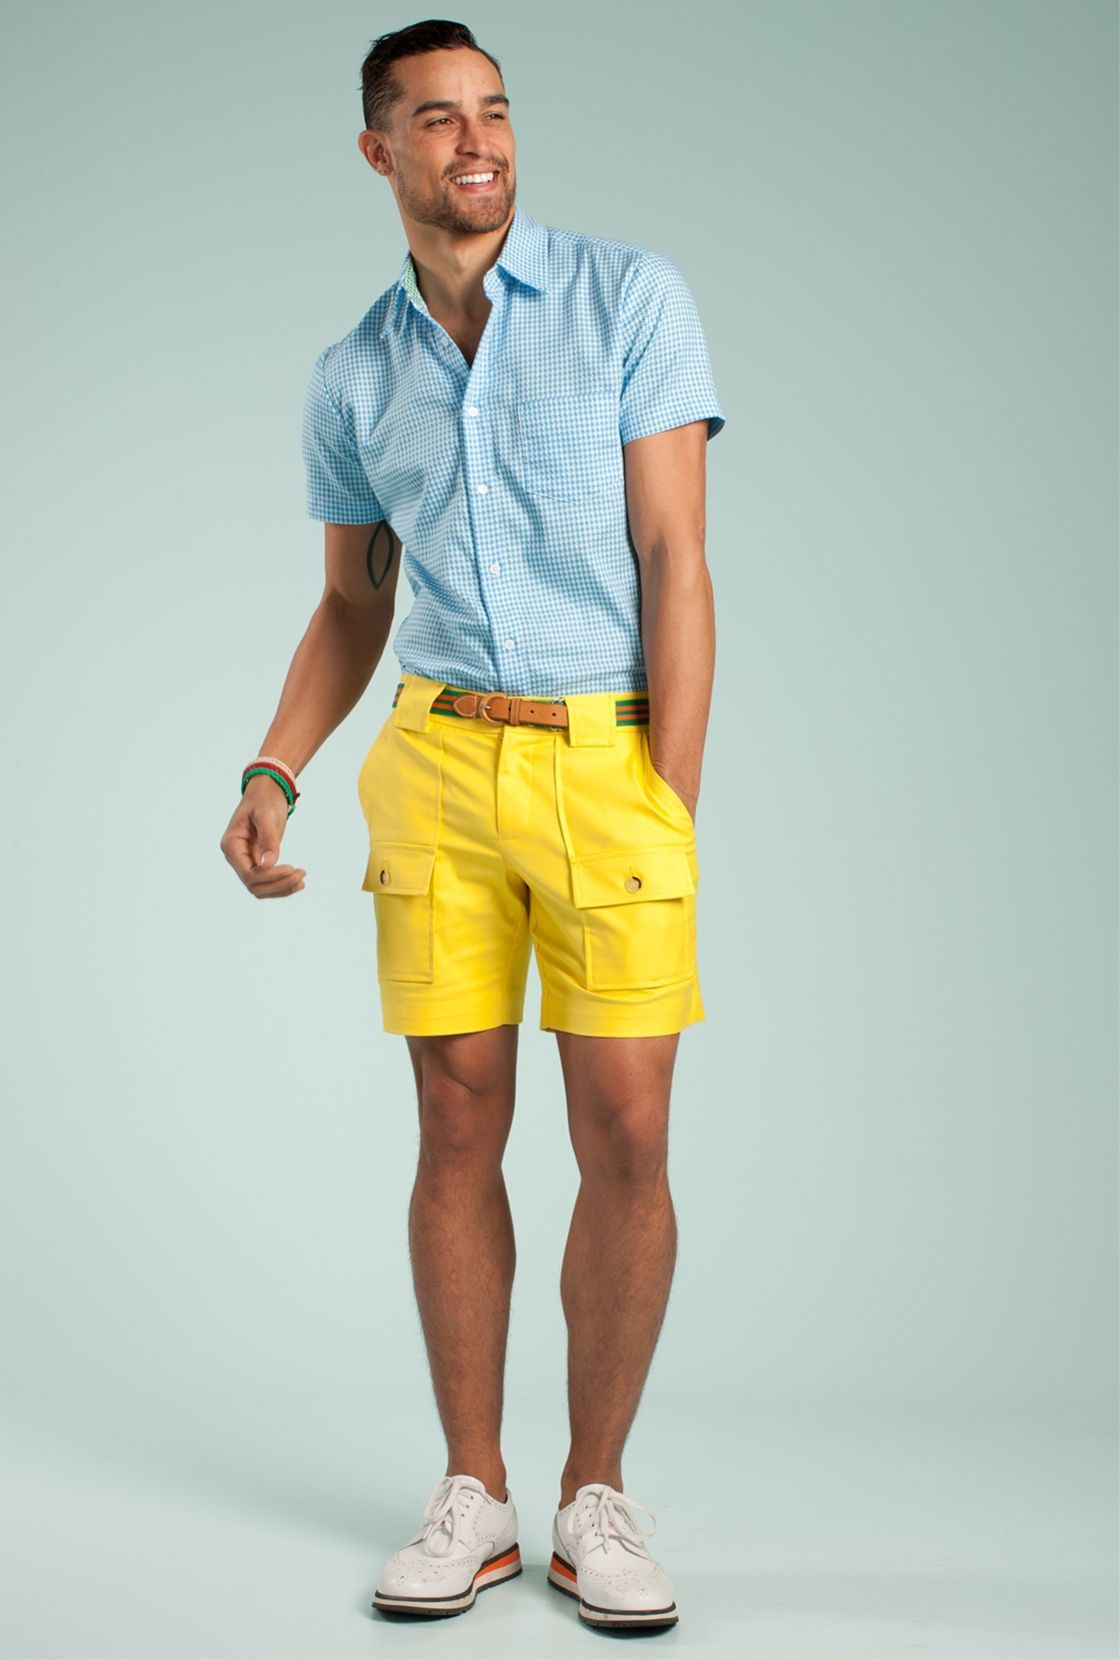 17 Best images about Yellow Shorts on Pinterest | Bermudas, Blue ...